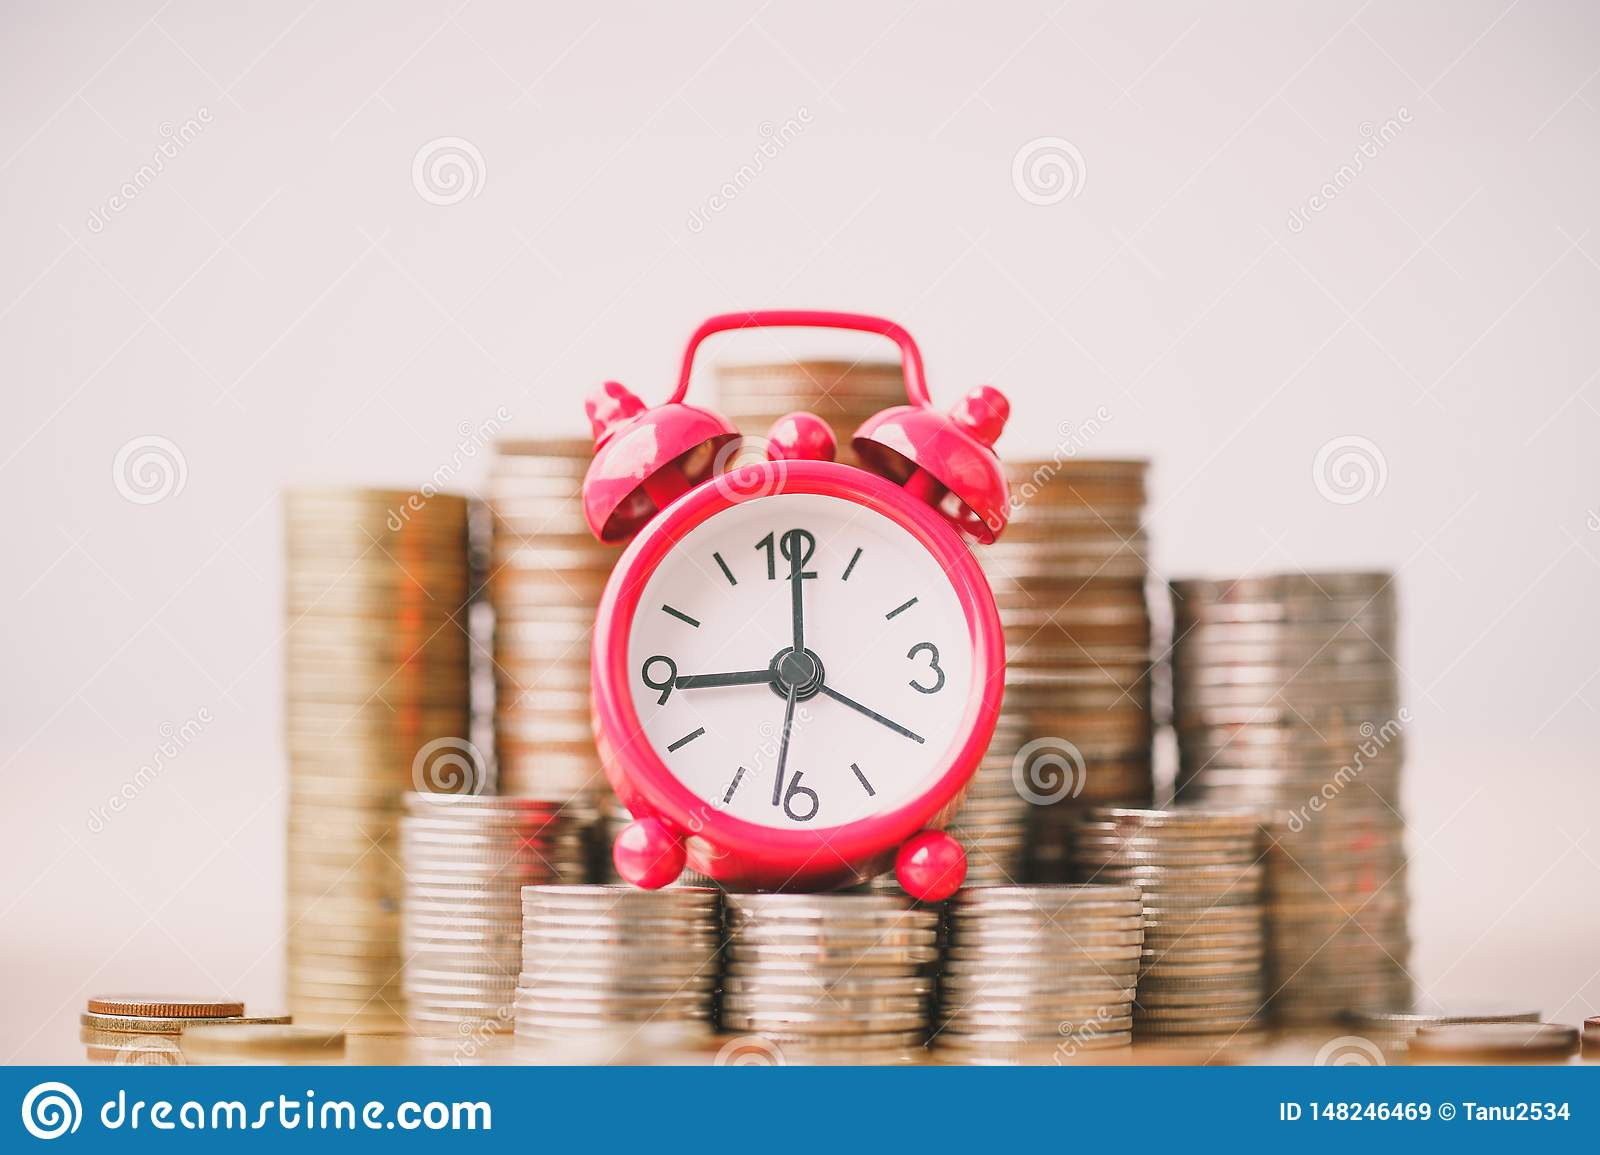 Red alarm clock on stack of coins in concept of savings and money growing or energy save.